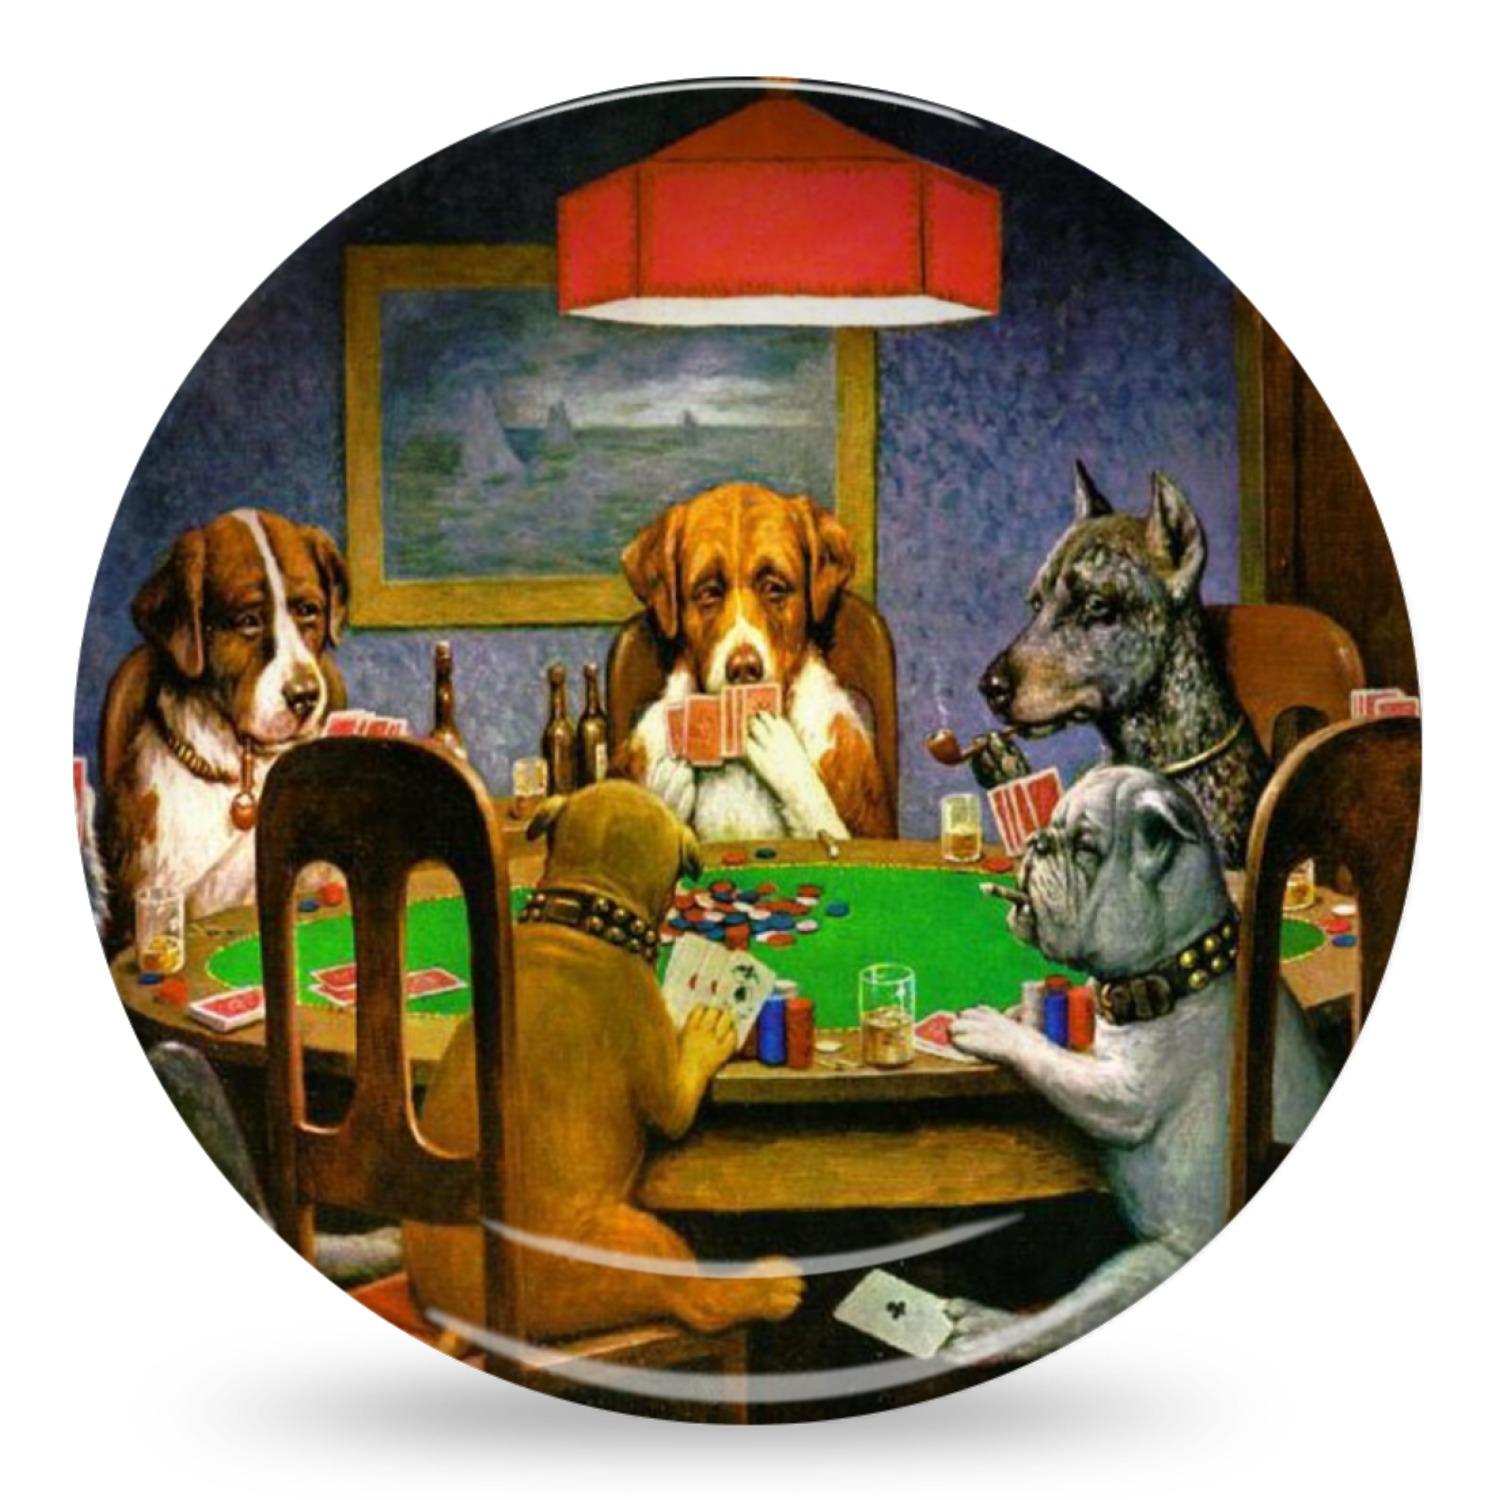 Dogs Playing Poker by C.M.Coolidge Microwave Safe Plastic Plate - Composite Polymer  sc 1 st  YouCustomizeIt & Dogs Playing Poker by C.M.Coolidge Microwave Safe Plastic Plate ...